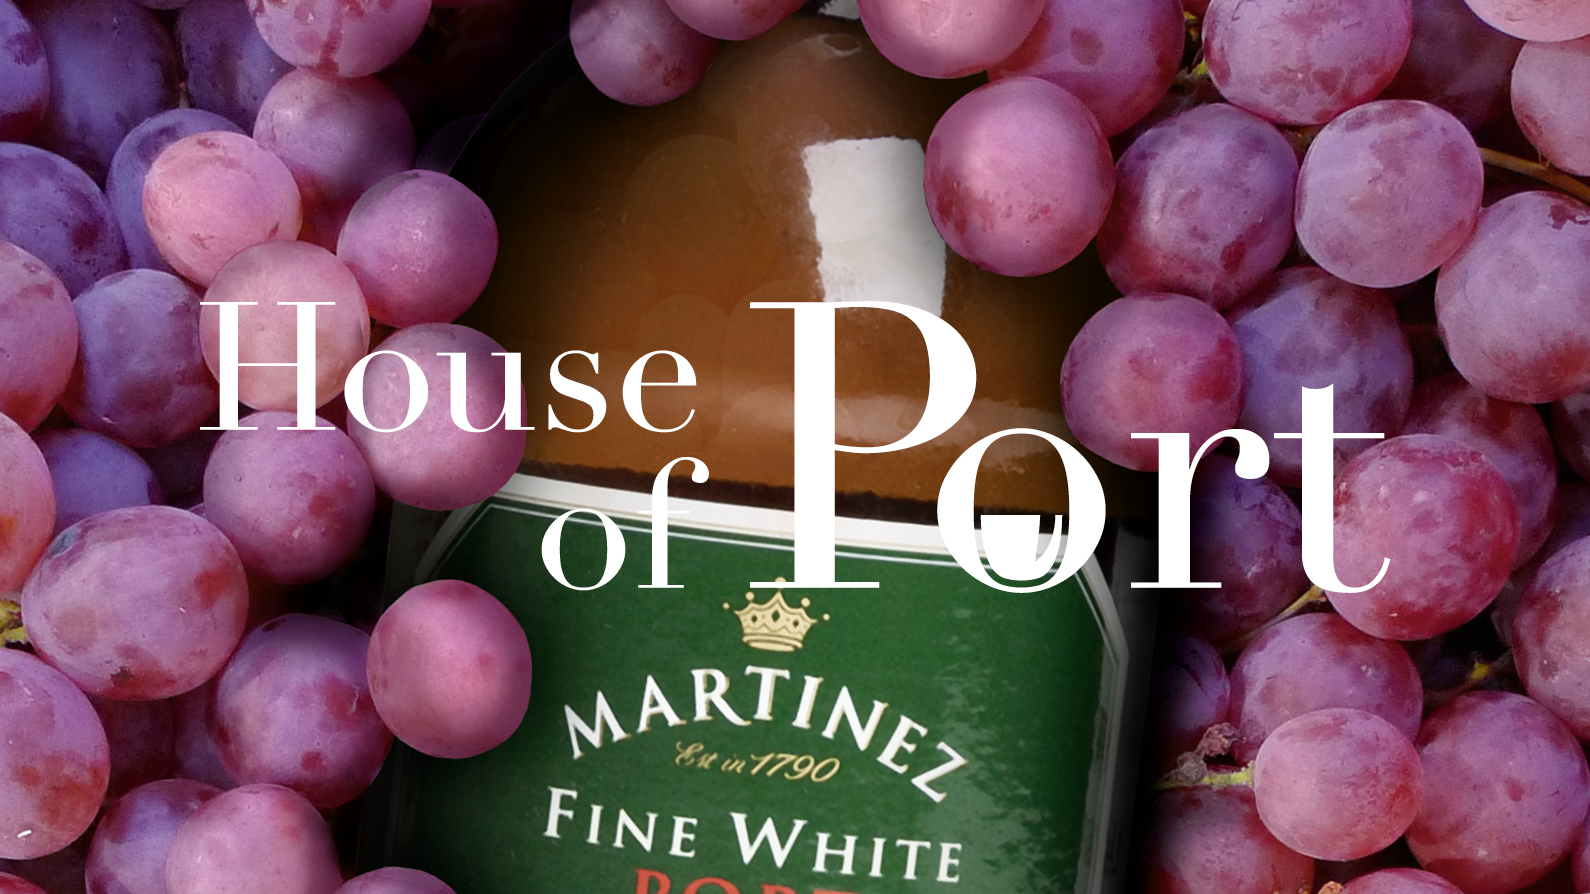 House of Port